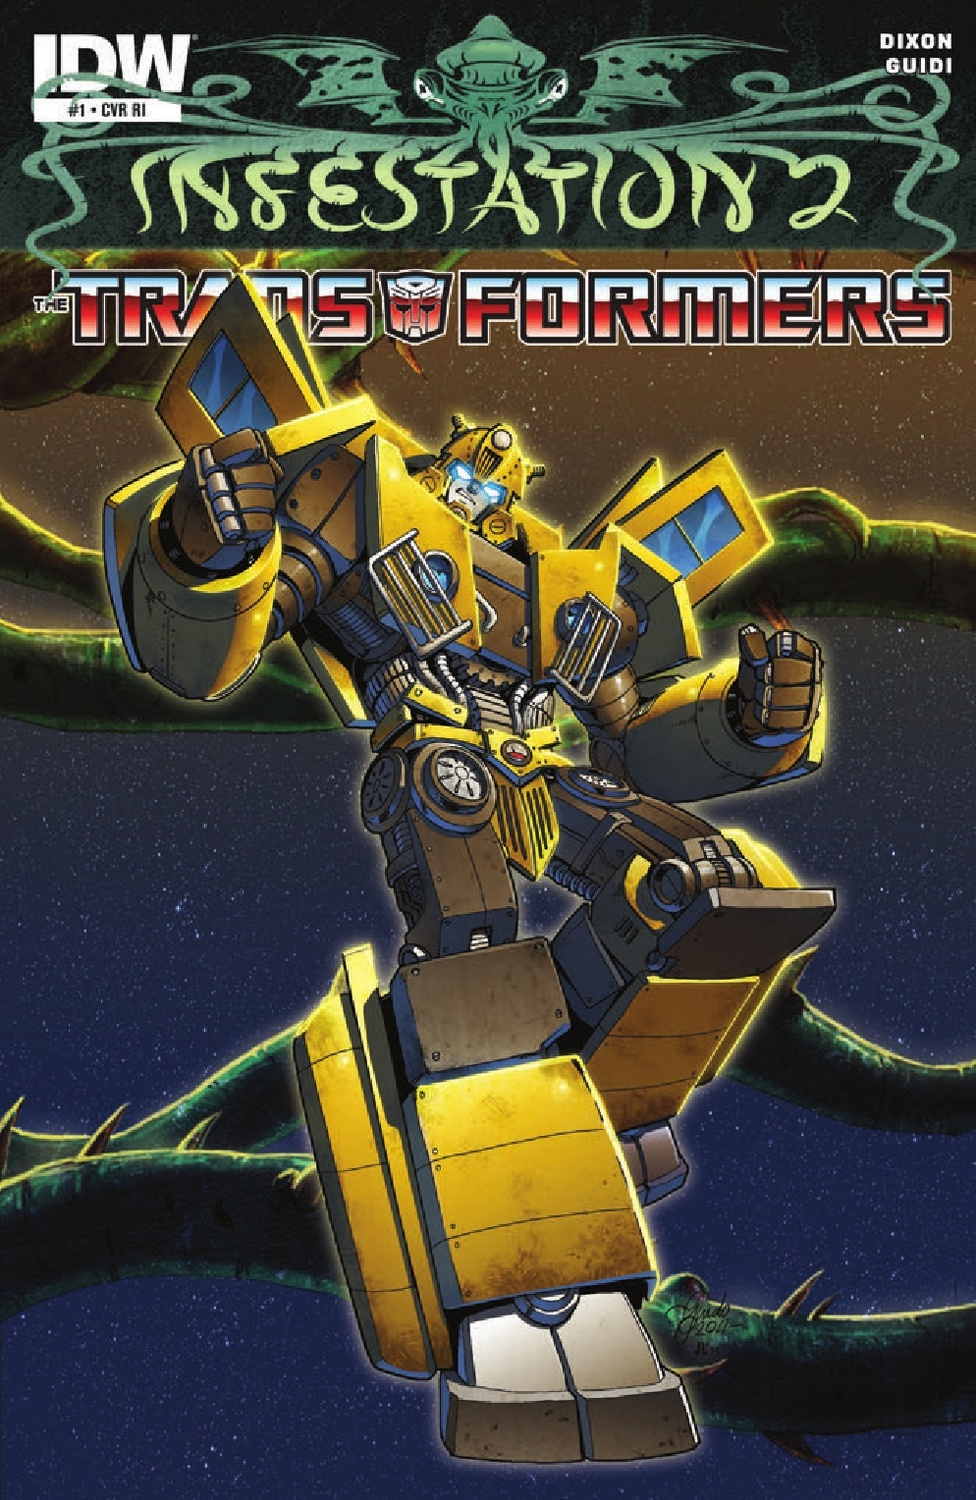 infestation 2 transformers #1 - transformers comics - tfw2005